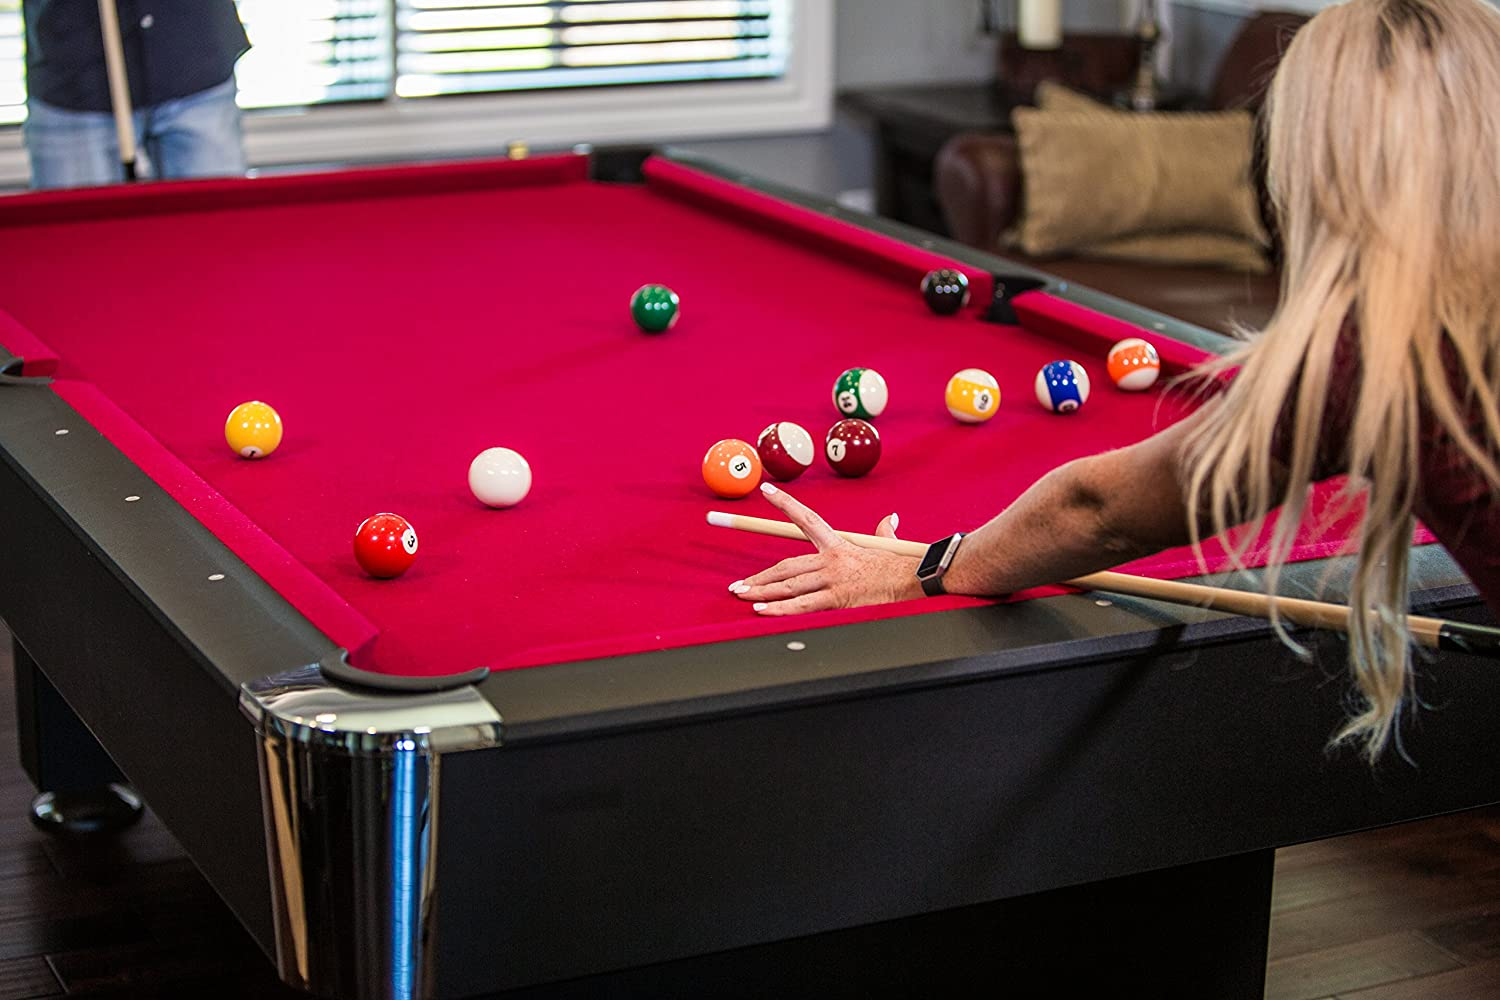 Amazon mizerak donovan ii 8 billiard table pool tables amazon mizerak donovan ii 8 billiard table pool tables sports outdoors greentooth Image collections